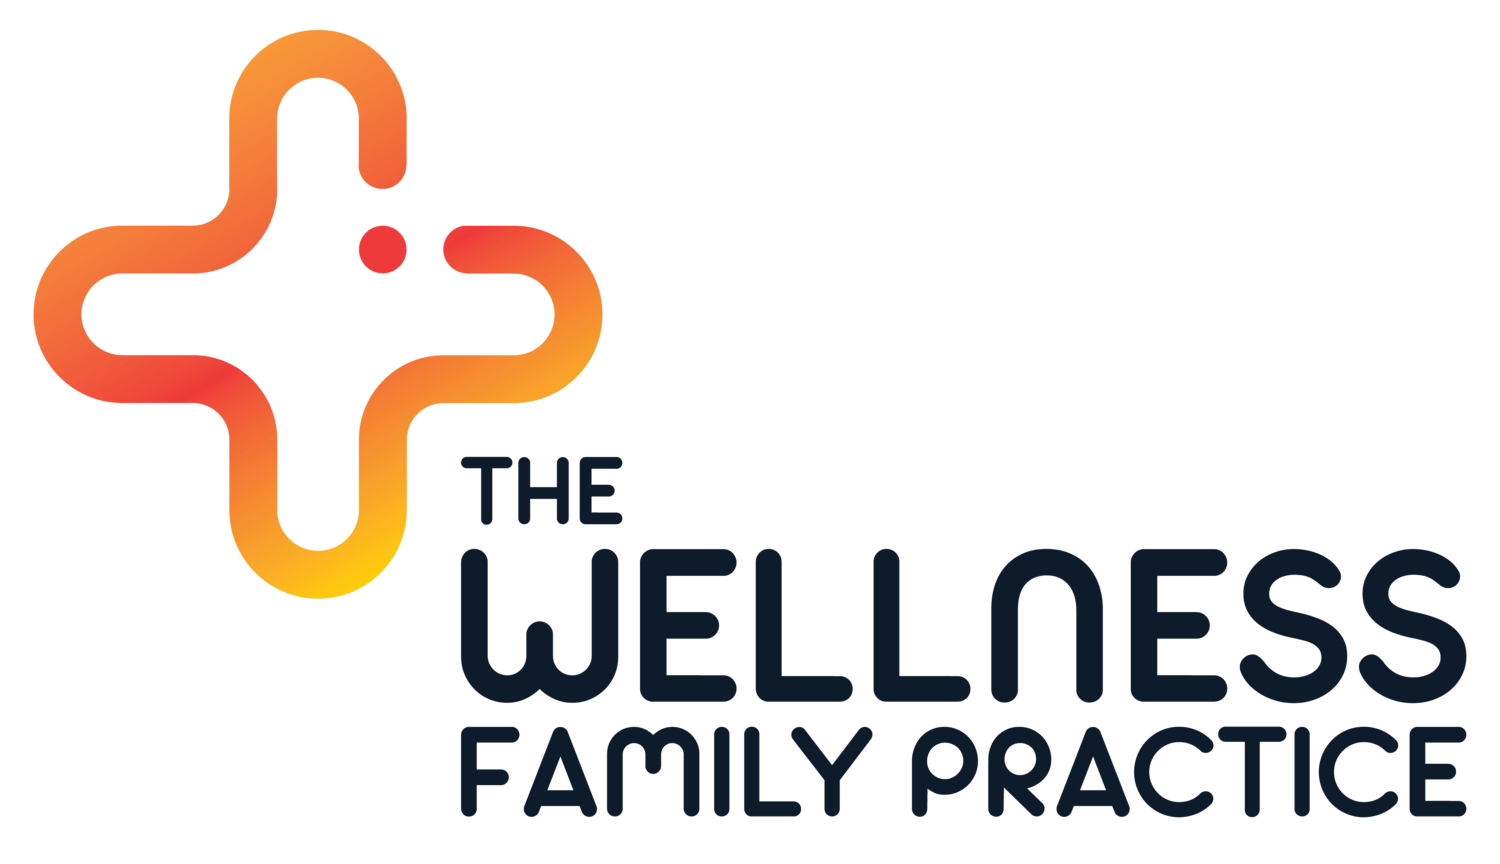 The Wellness Family Practice